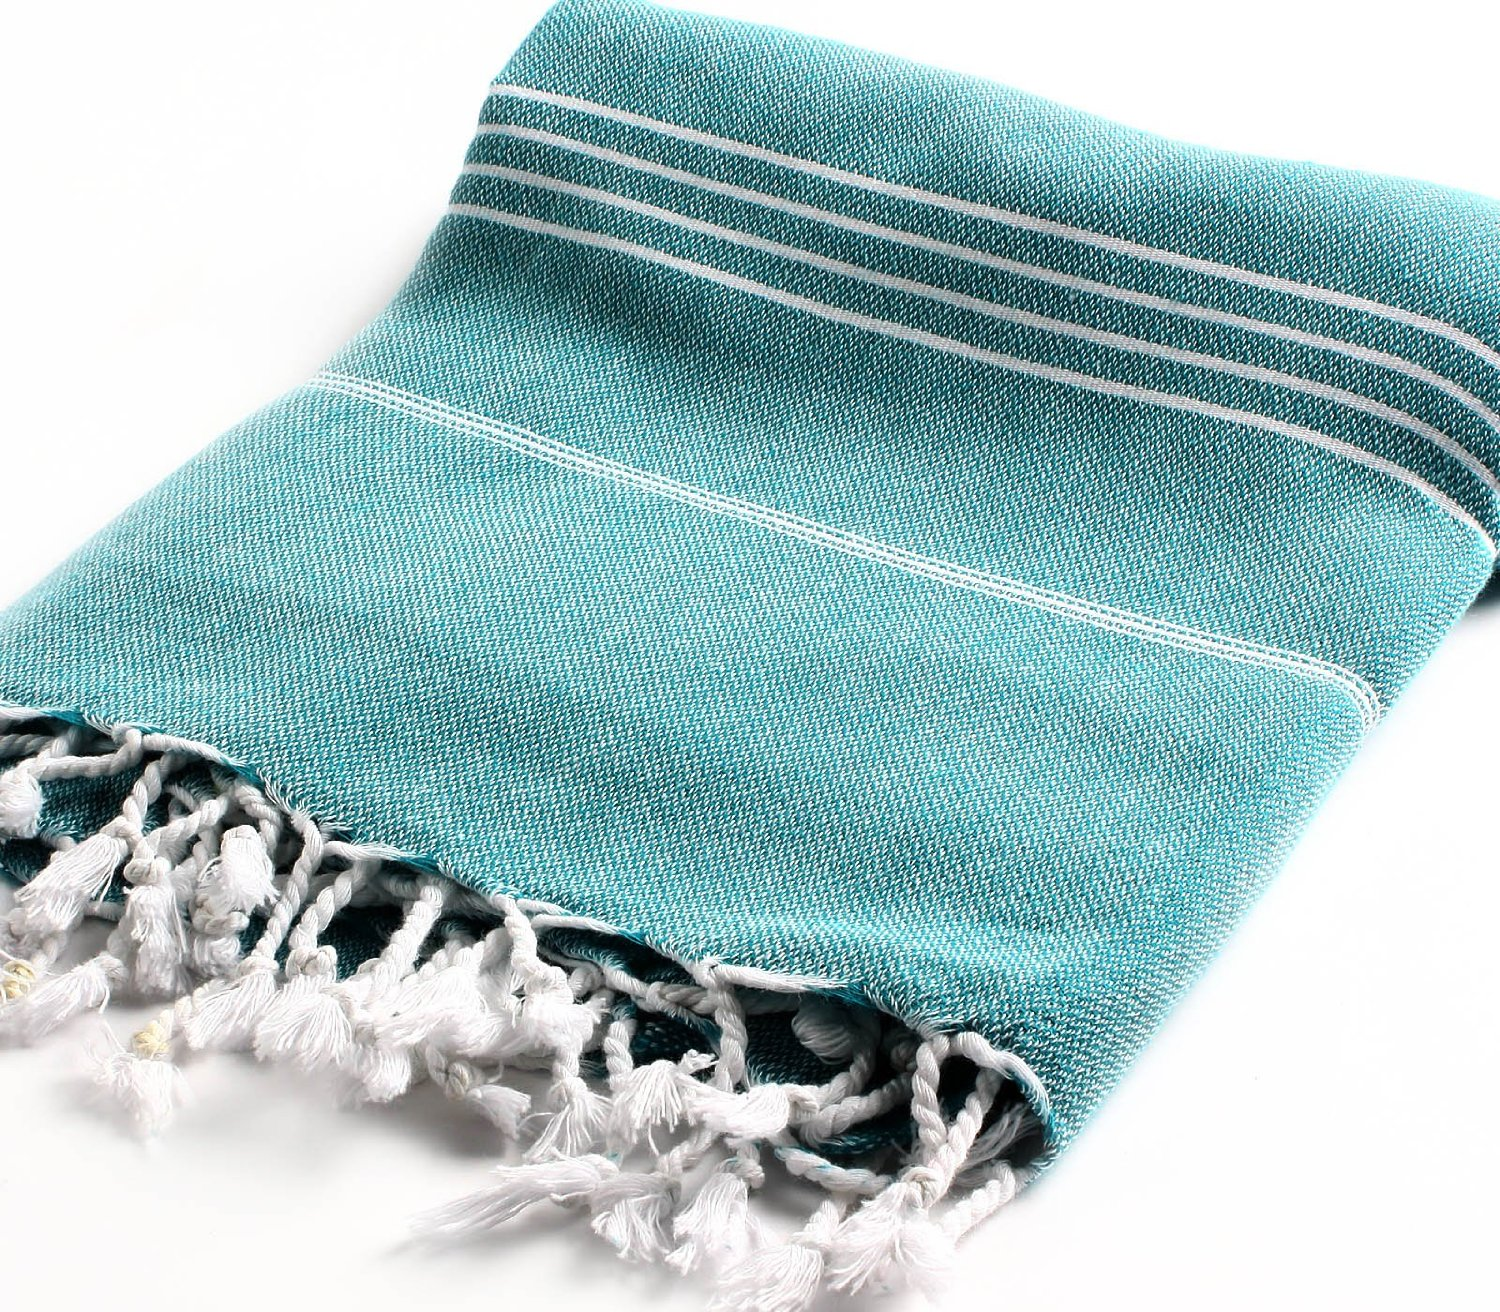 Cacala 100% Cotton Pestemal Turkish Bath Towel, 37 x 70″, Aqua review